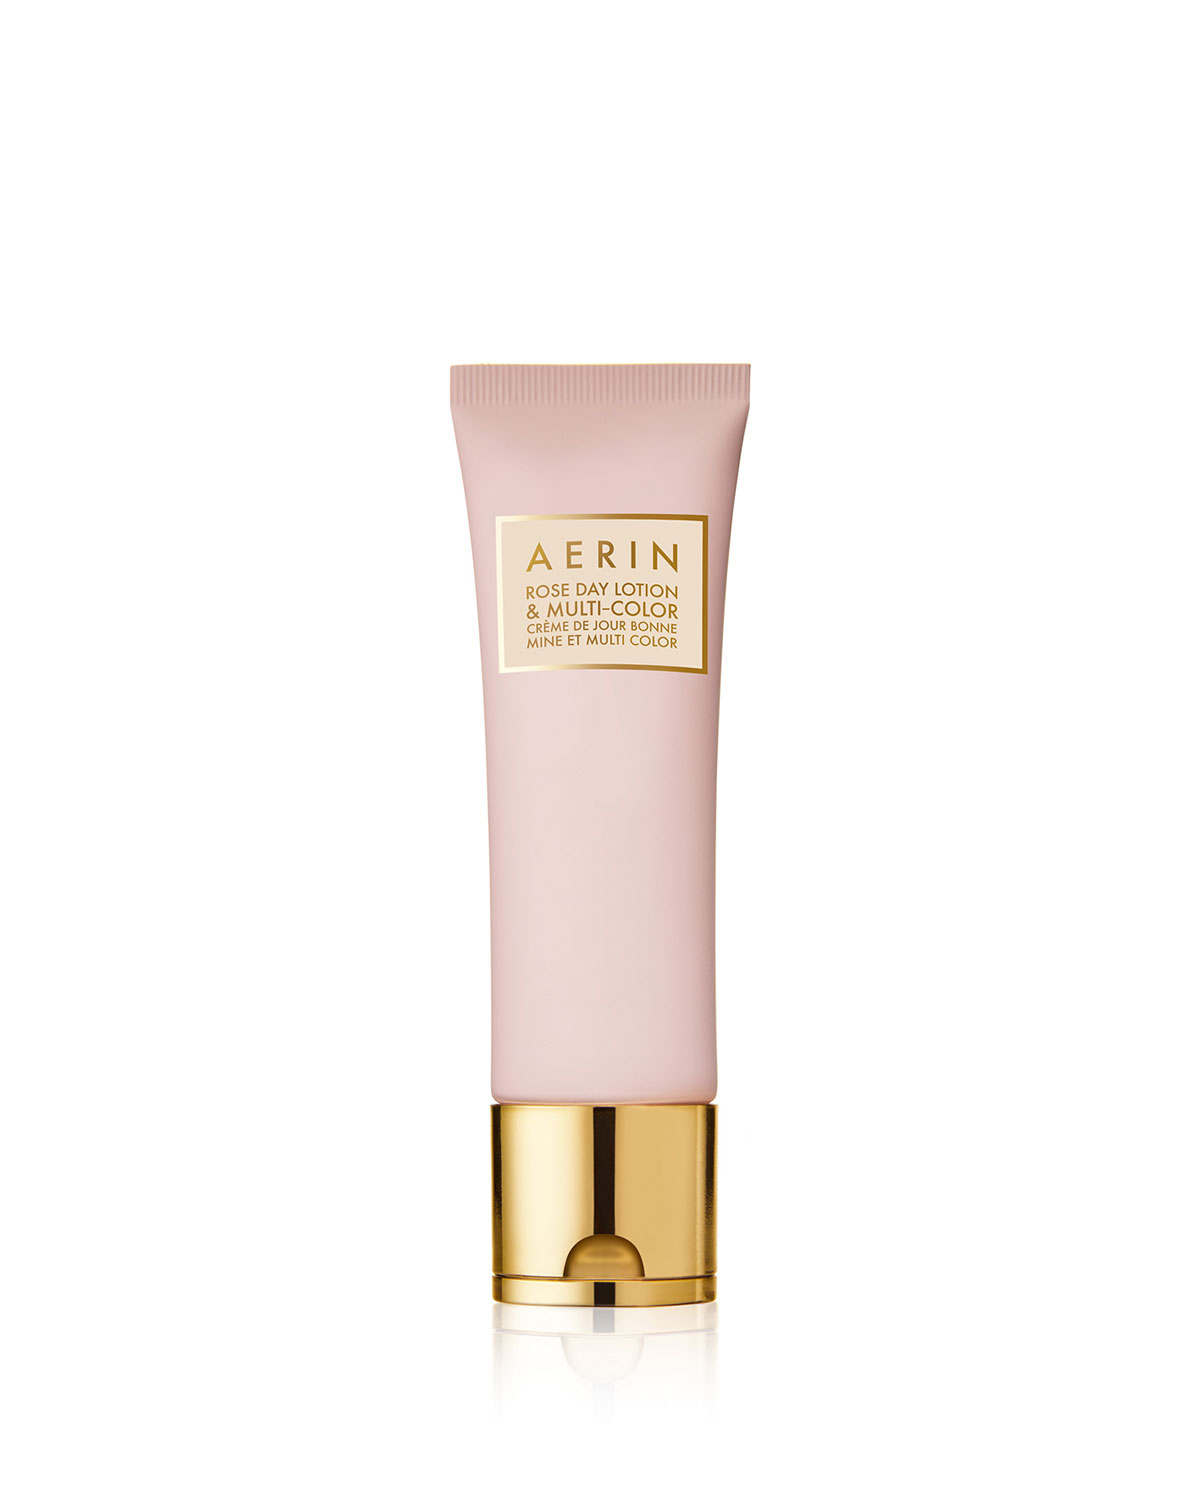 Aerin Rose Day Lotion & Multicolor, 1.7 oz./ 50 mL